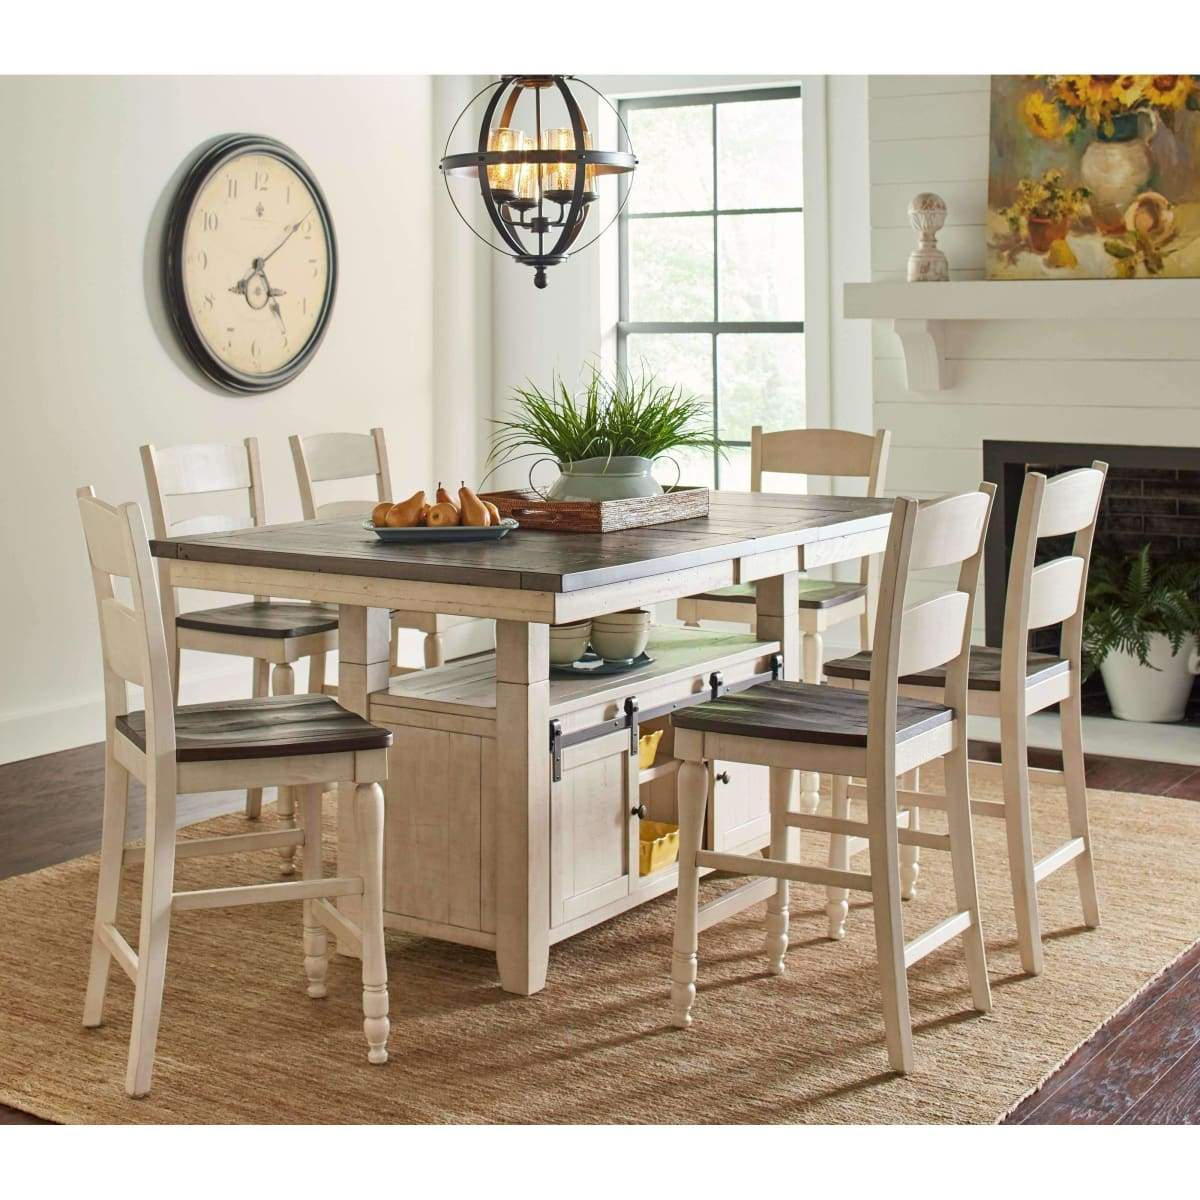 Madison County Vintage White Hi/Low Table & 6 Ladderback Dining Chairs - DININGCOUNTERHEIGHT